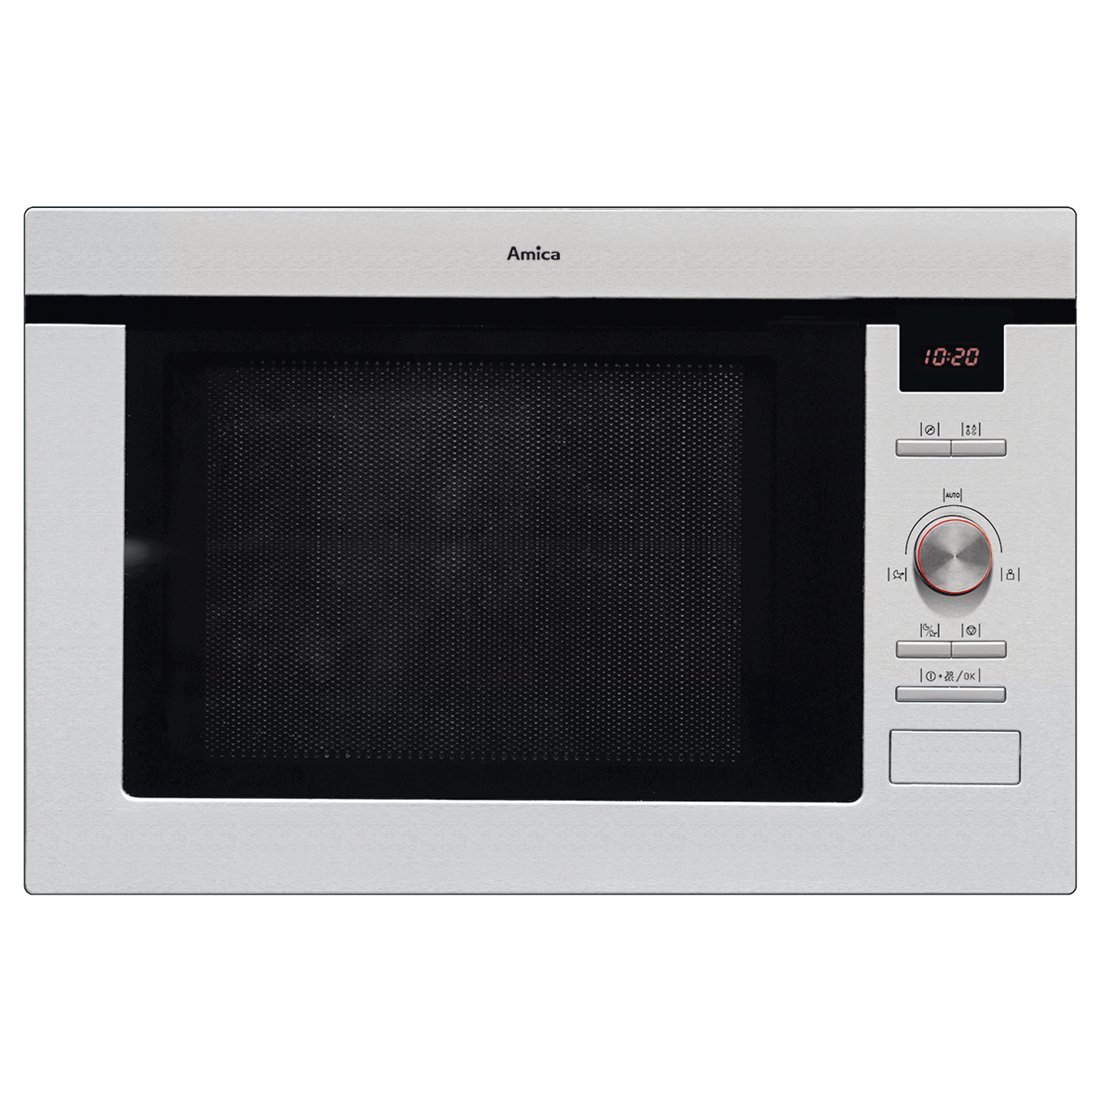 Amica 1103004 Built-In Microwave Cooker [Energy Class A]